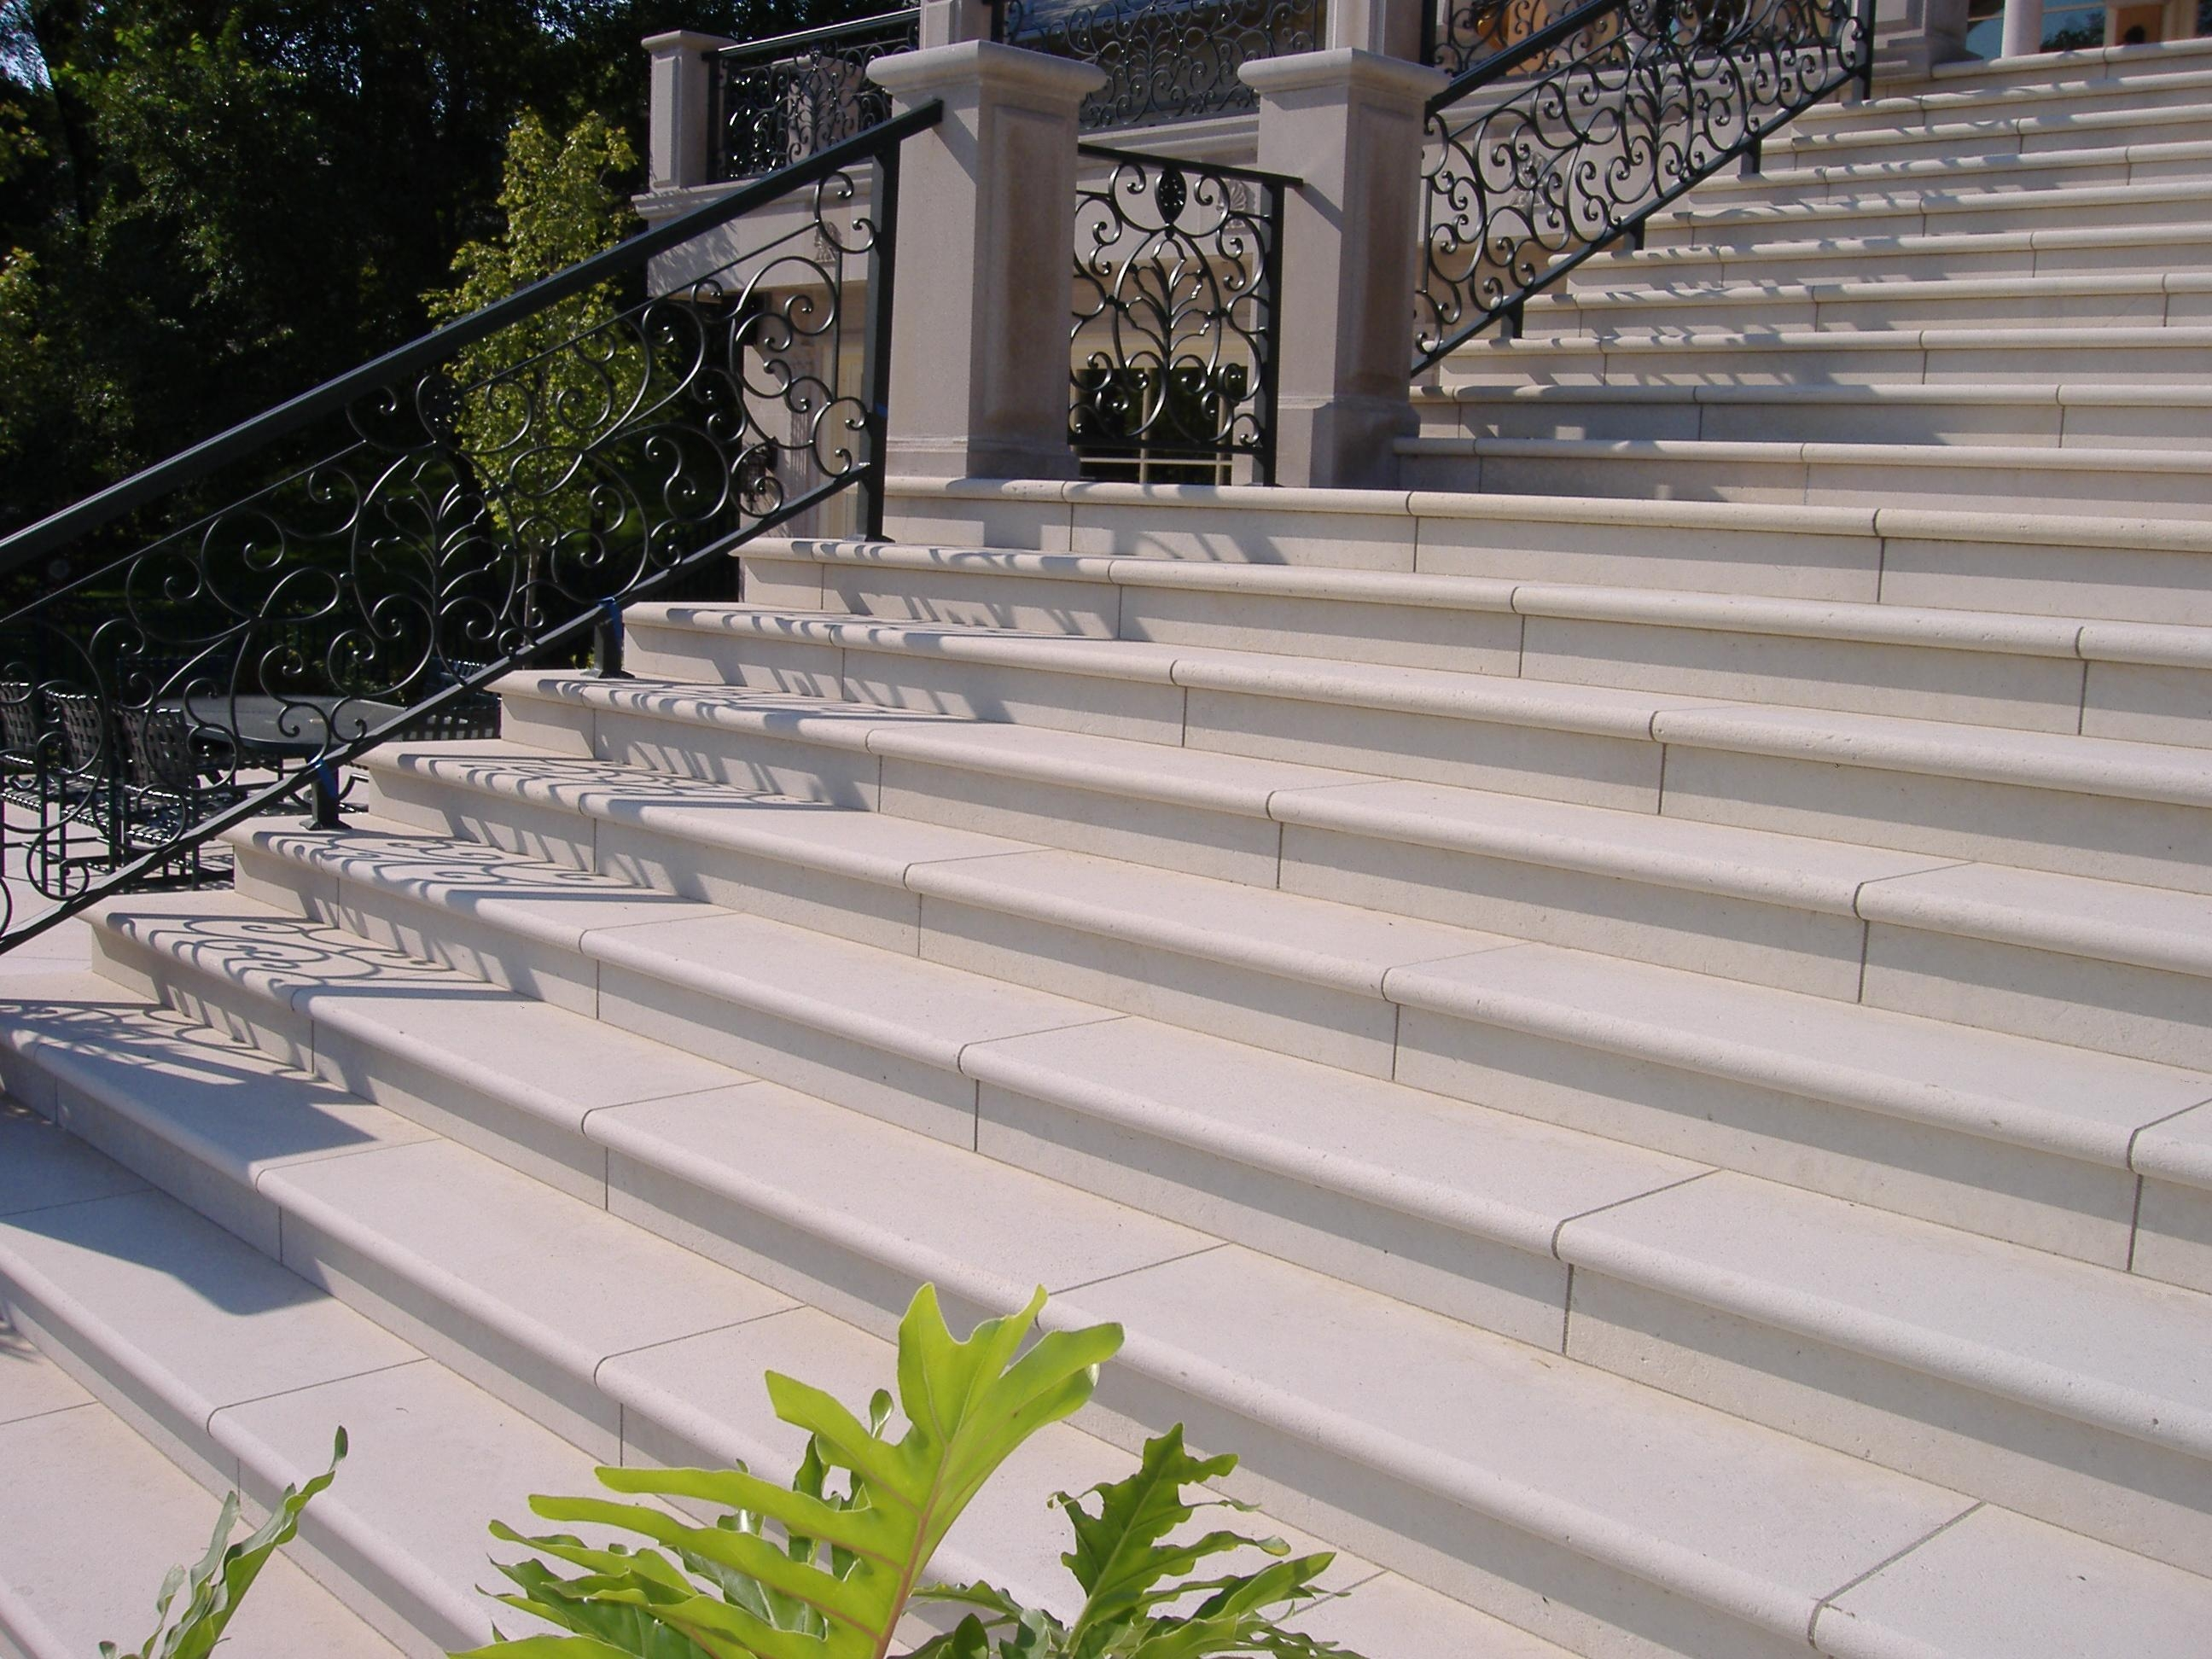 Treads And Risers Eden Valders Stone | Exterior Stone Stair Treads | Stone Slab | Grey Flagstone Step | Solid Weathered | Carpet Metal Rail Wood Cap | Brick